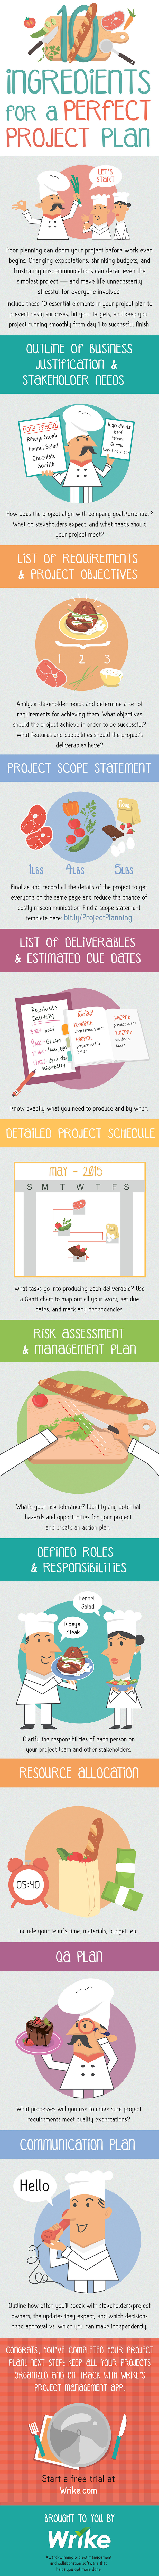 10 Essential Elements for the Perfect Project Plan (#Infographic)